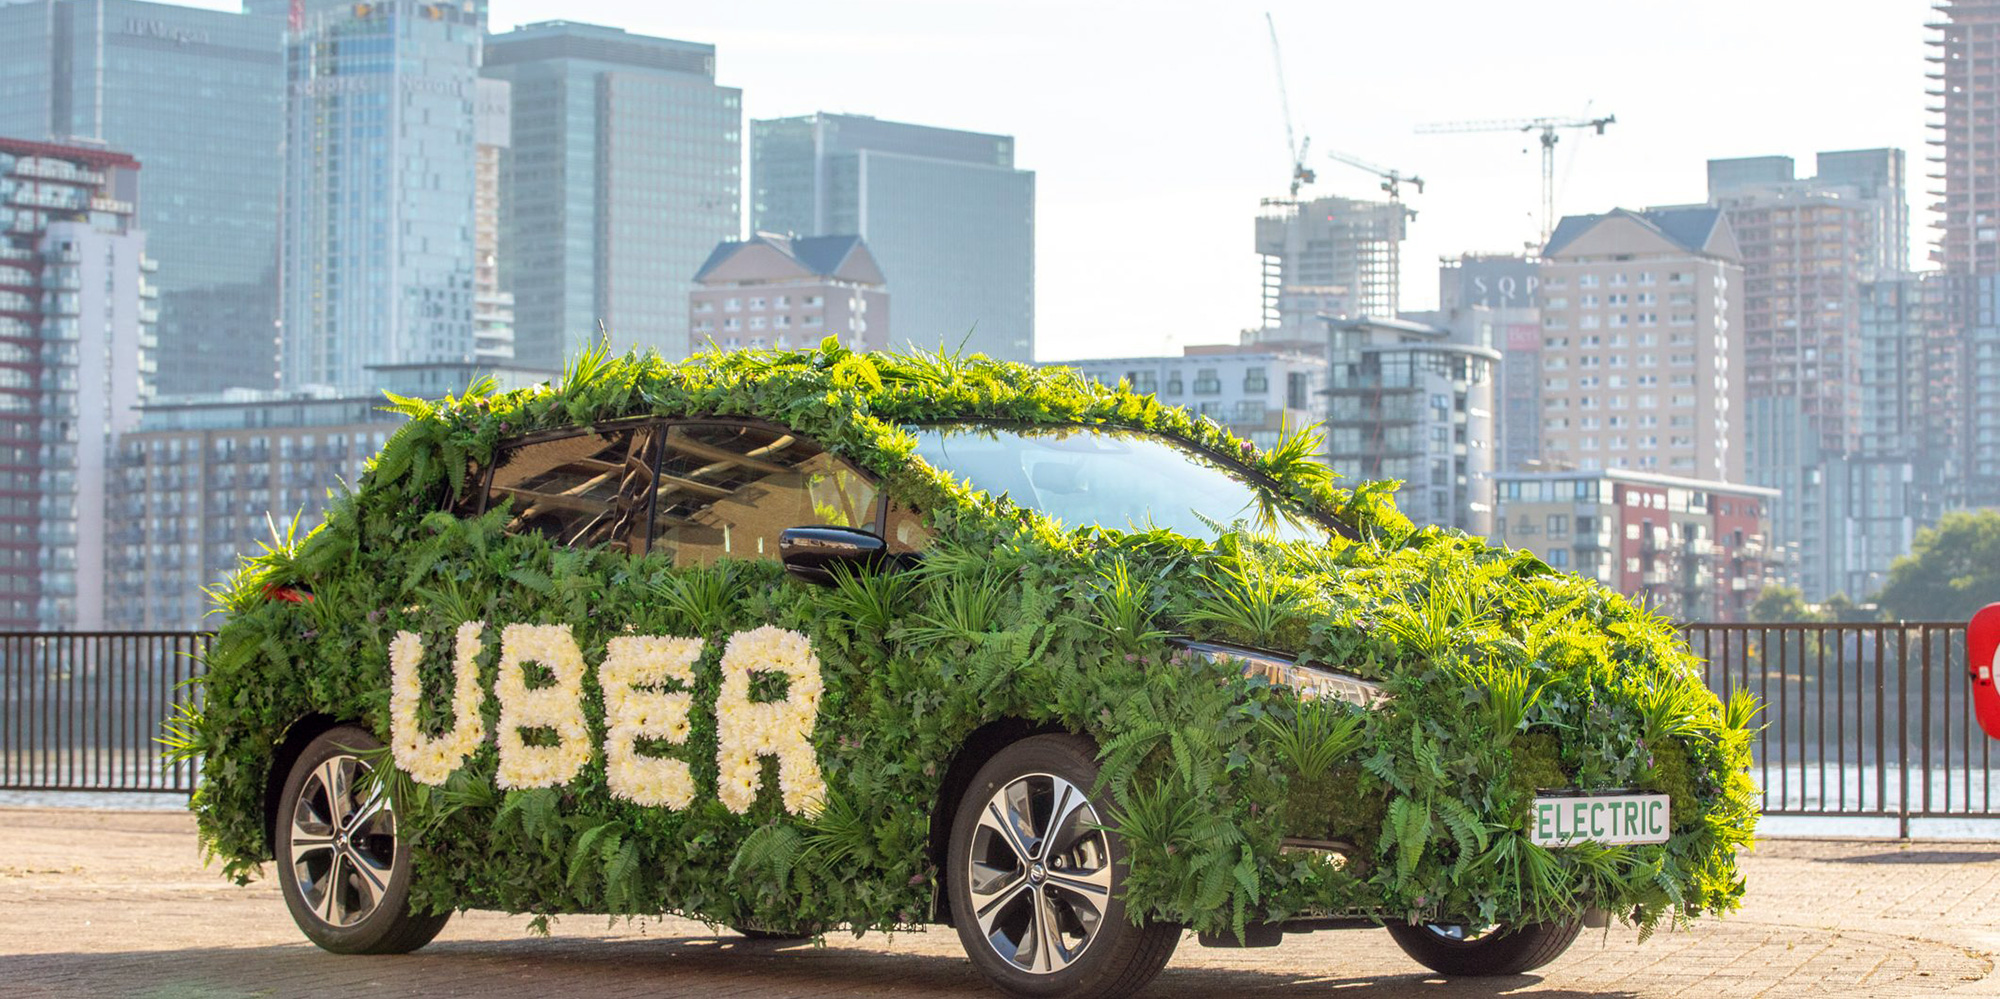 Uber announces $800 million to accelerate transition to electric cars, but only aims for 100% electric by 2040